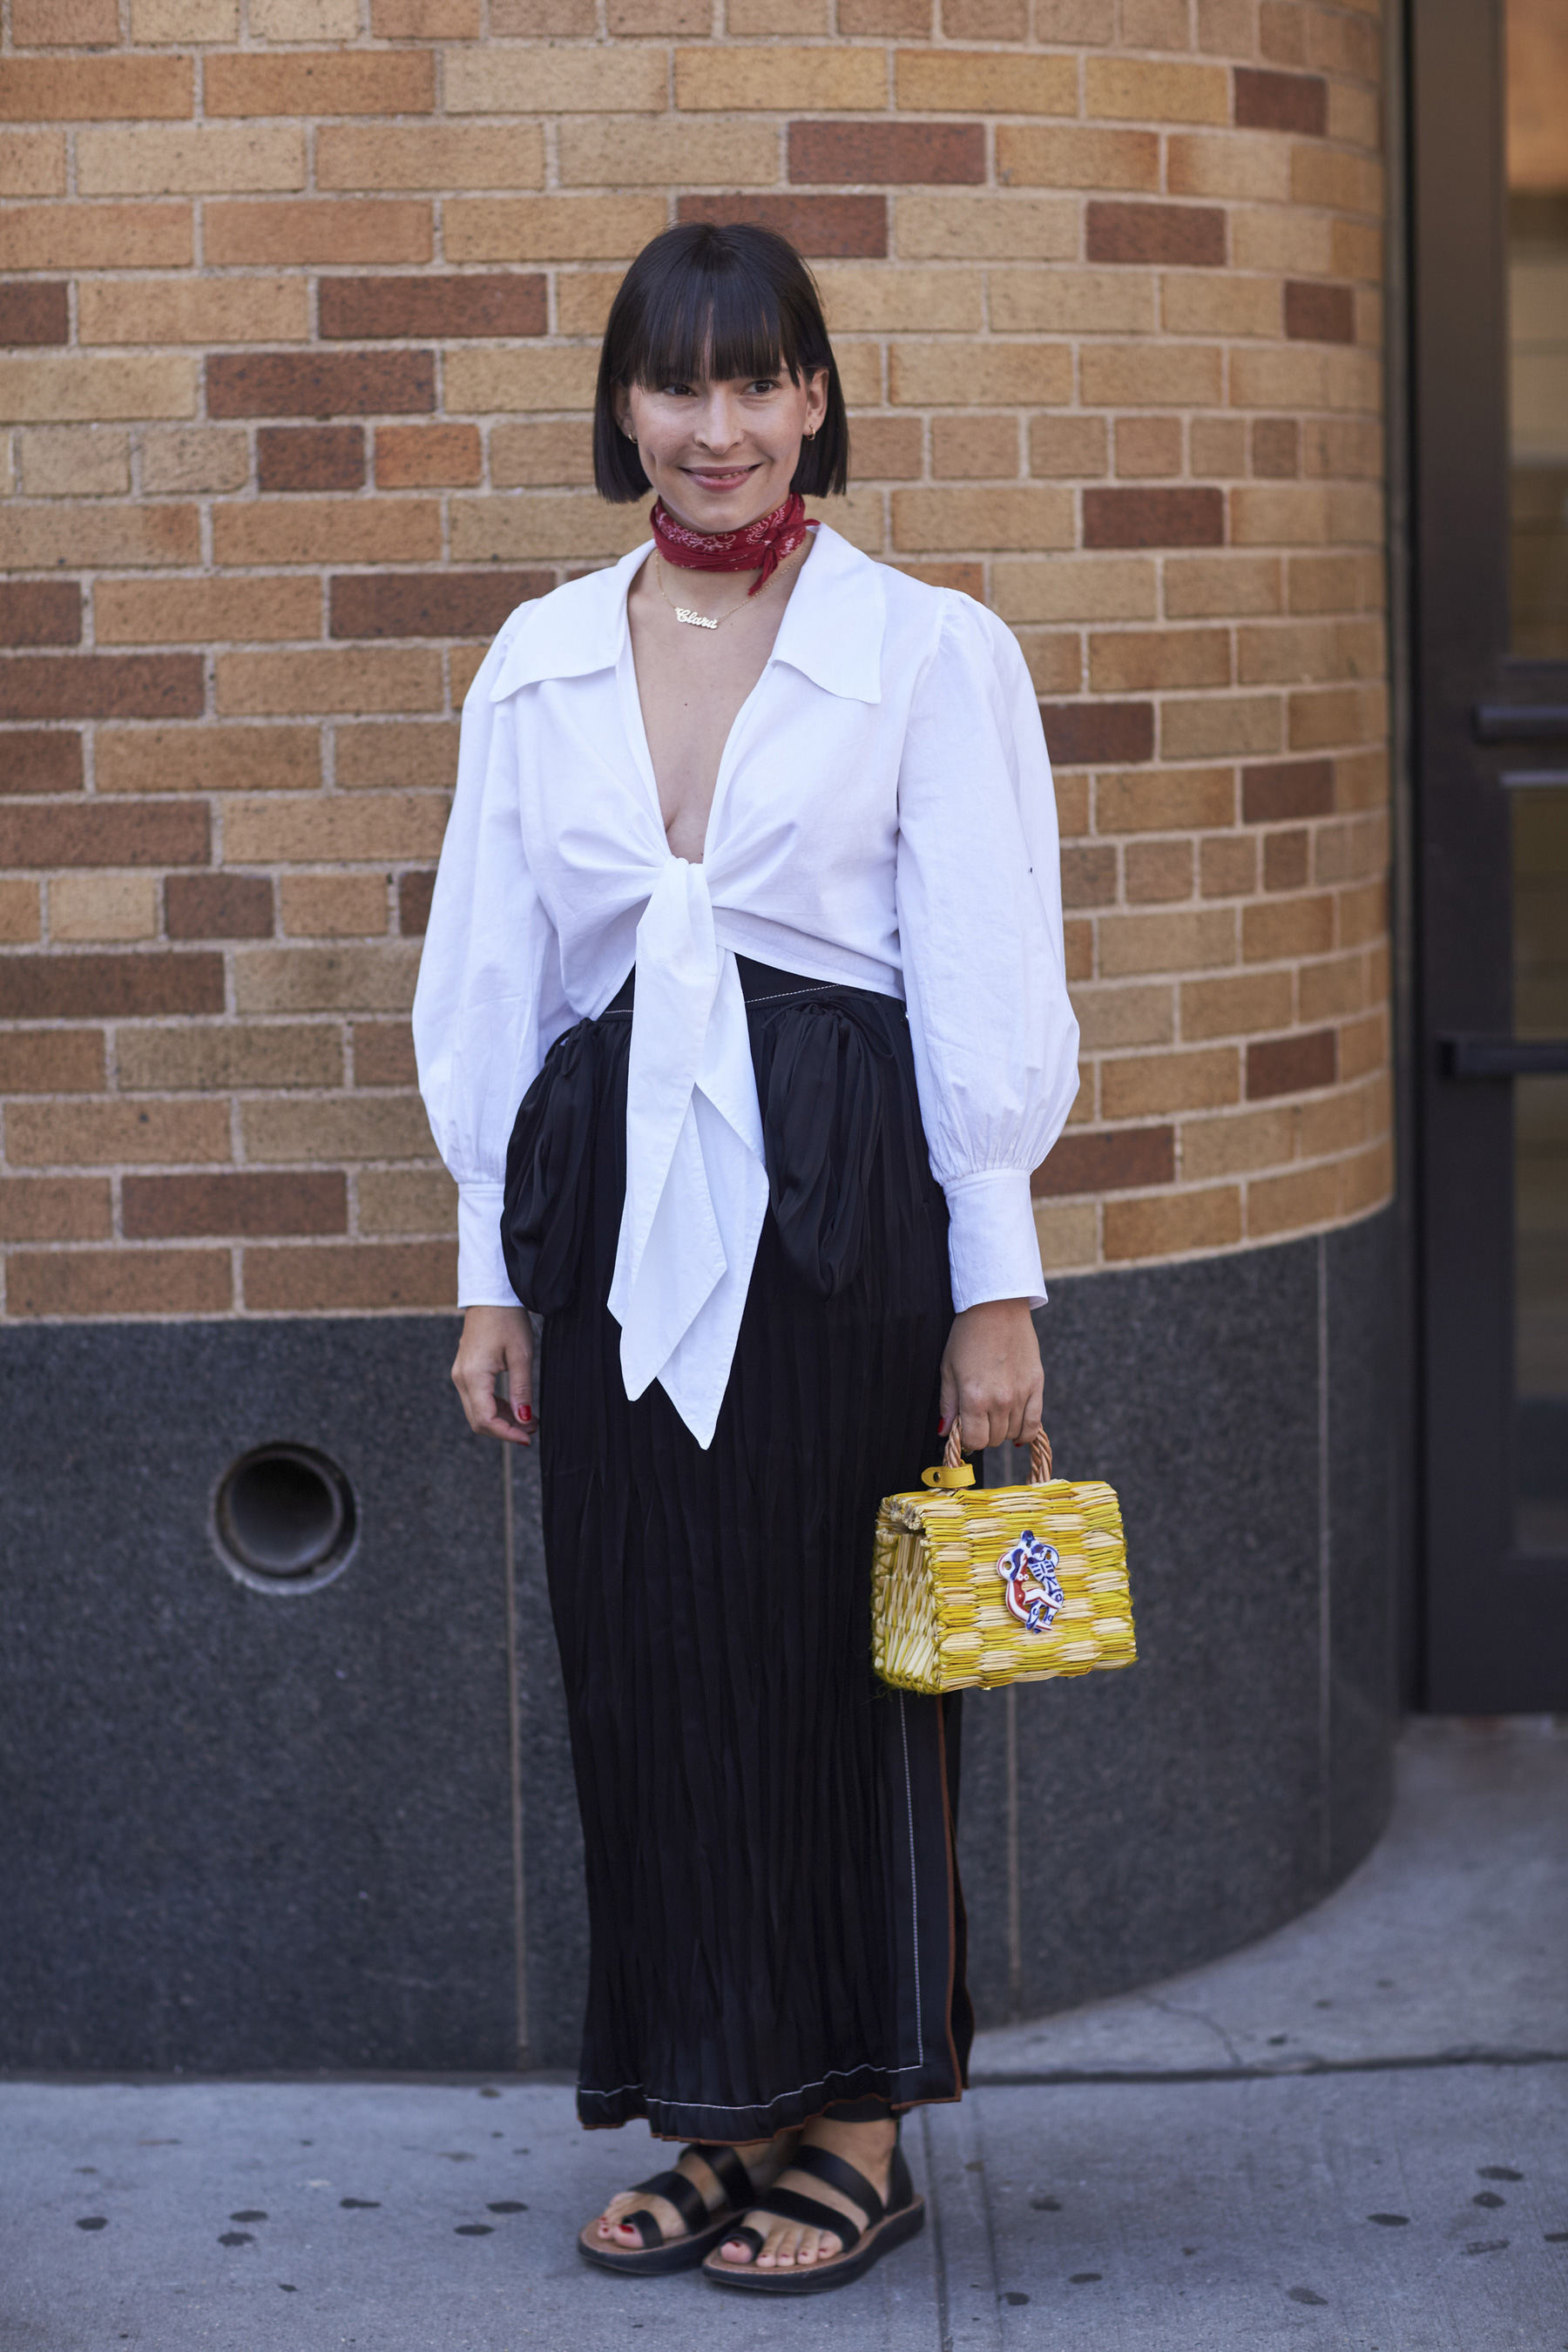 The Best Street Style from New York Fashion Week Street Style Spring 2018 Day 3 Cont.